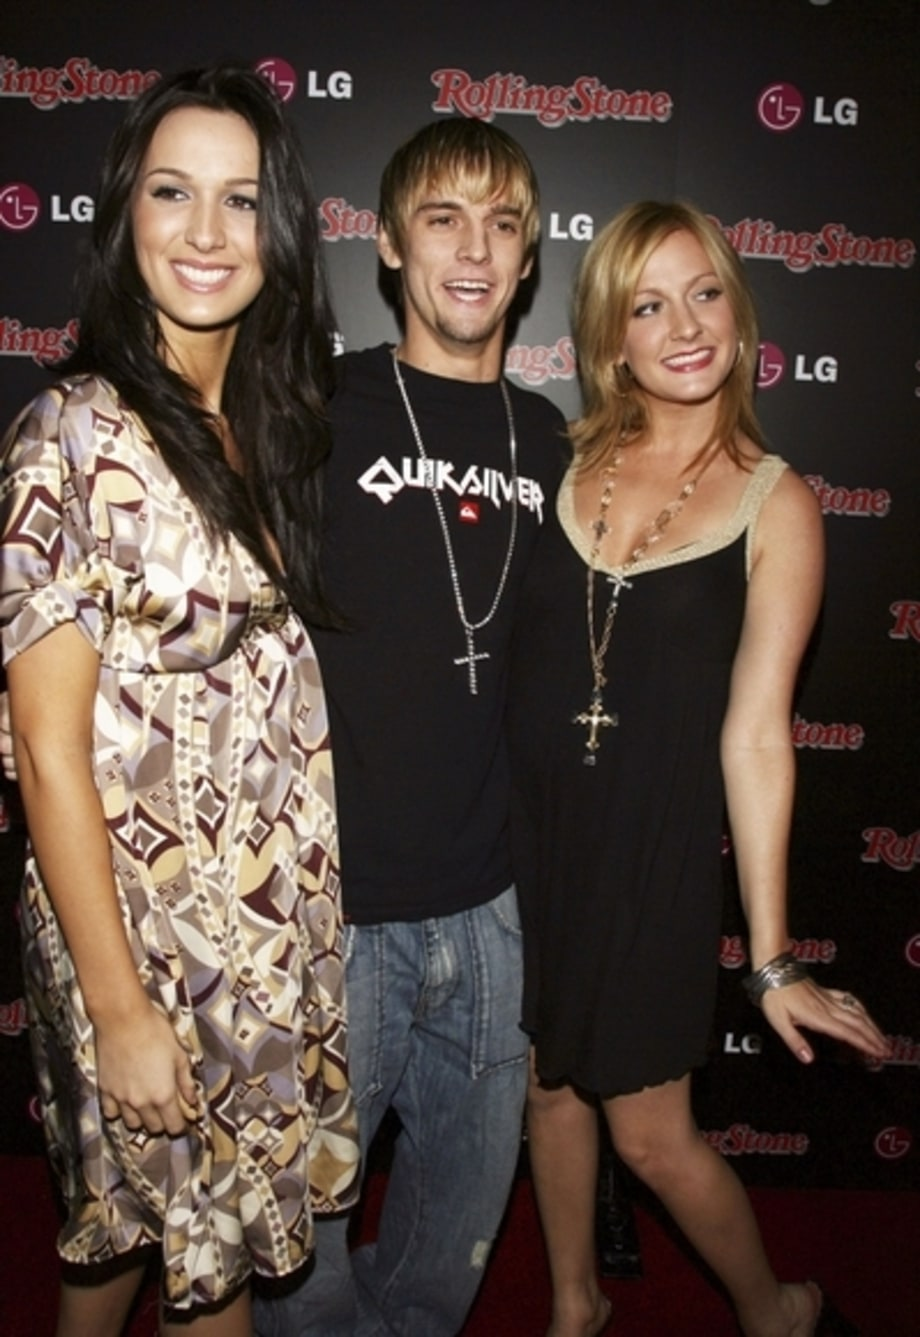 Hot People at Rolling Stone's 2006 Hot List Party